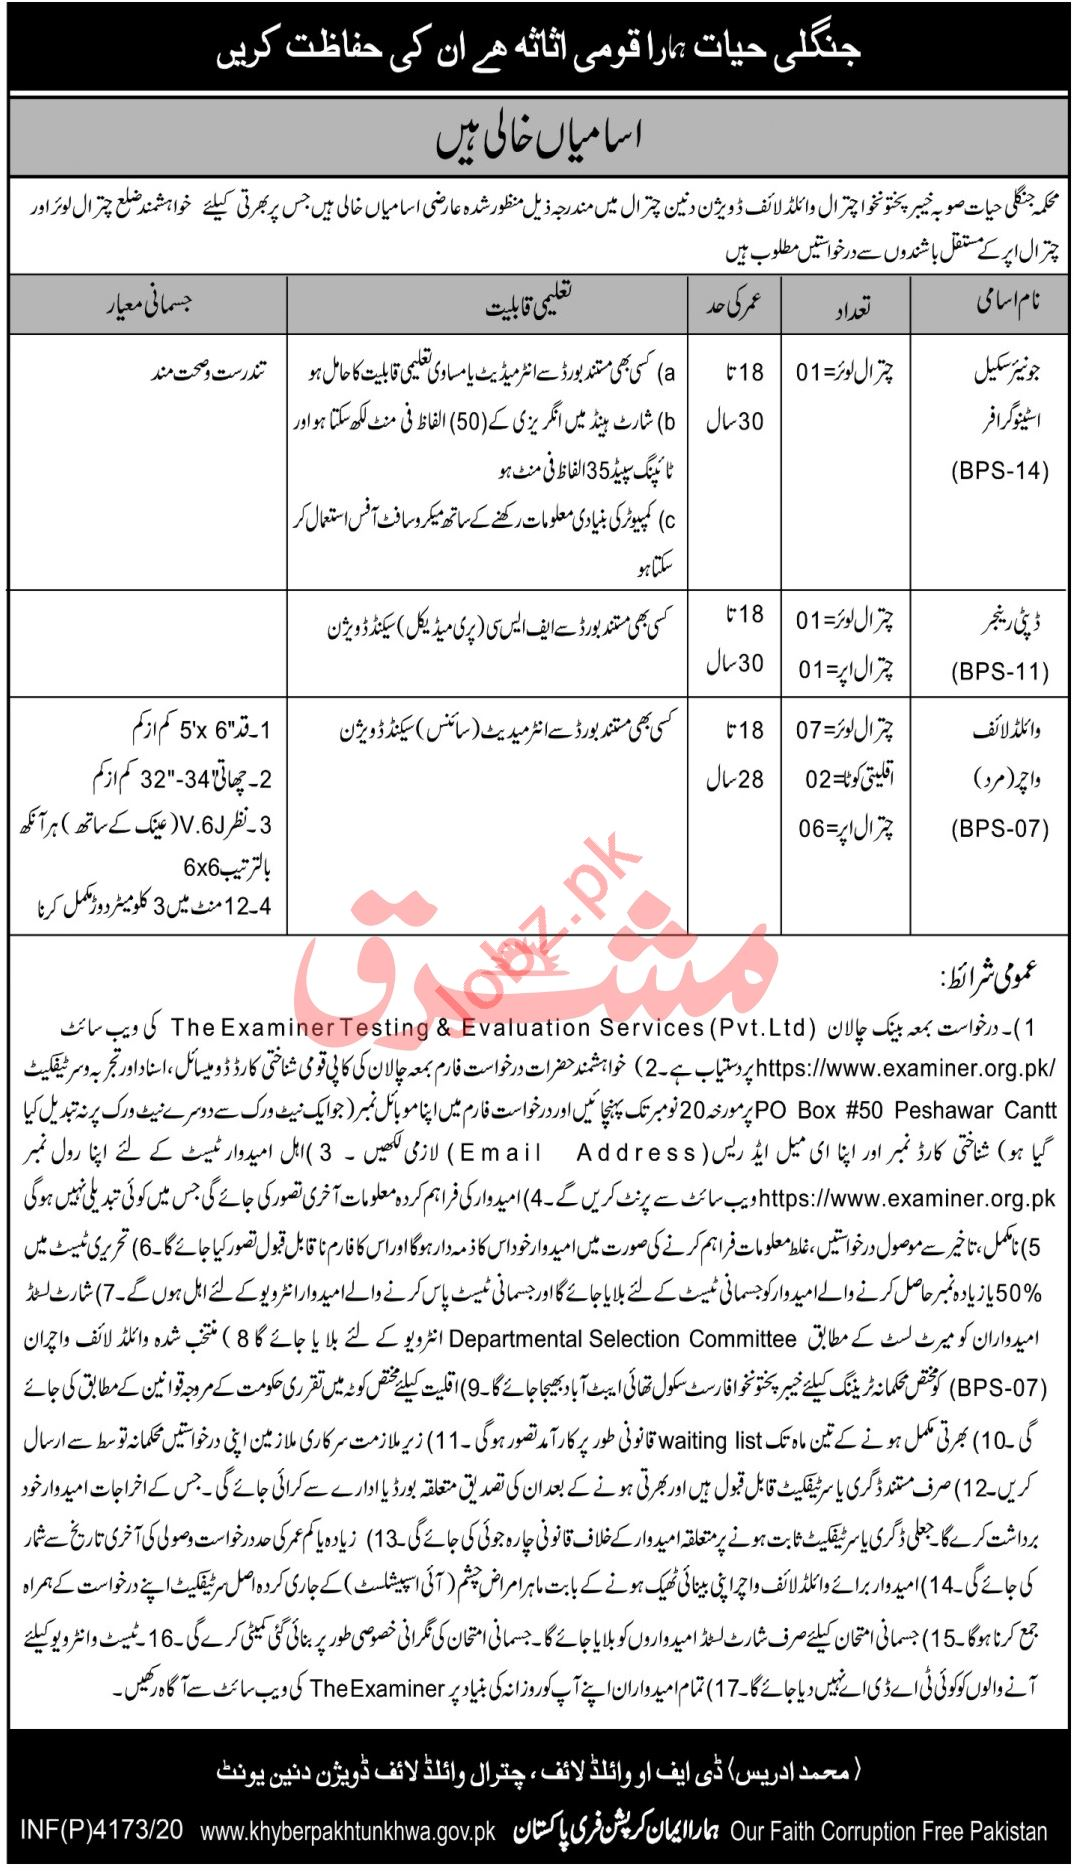 Chitral Wildlife Division Jobs 2020 for Wildlife Watcher